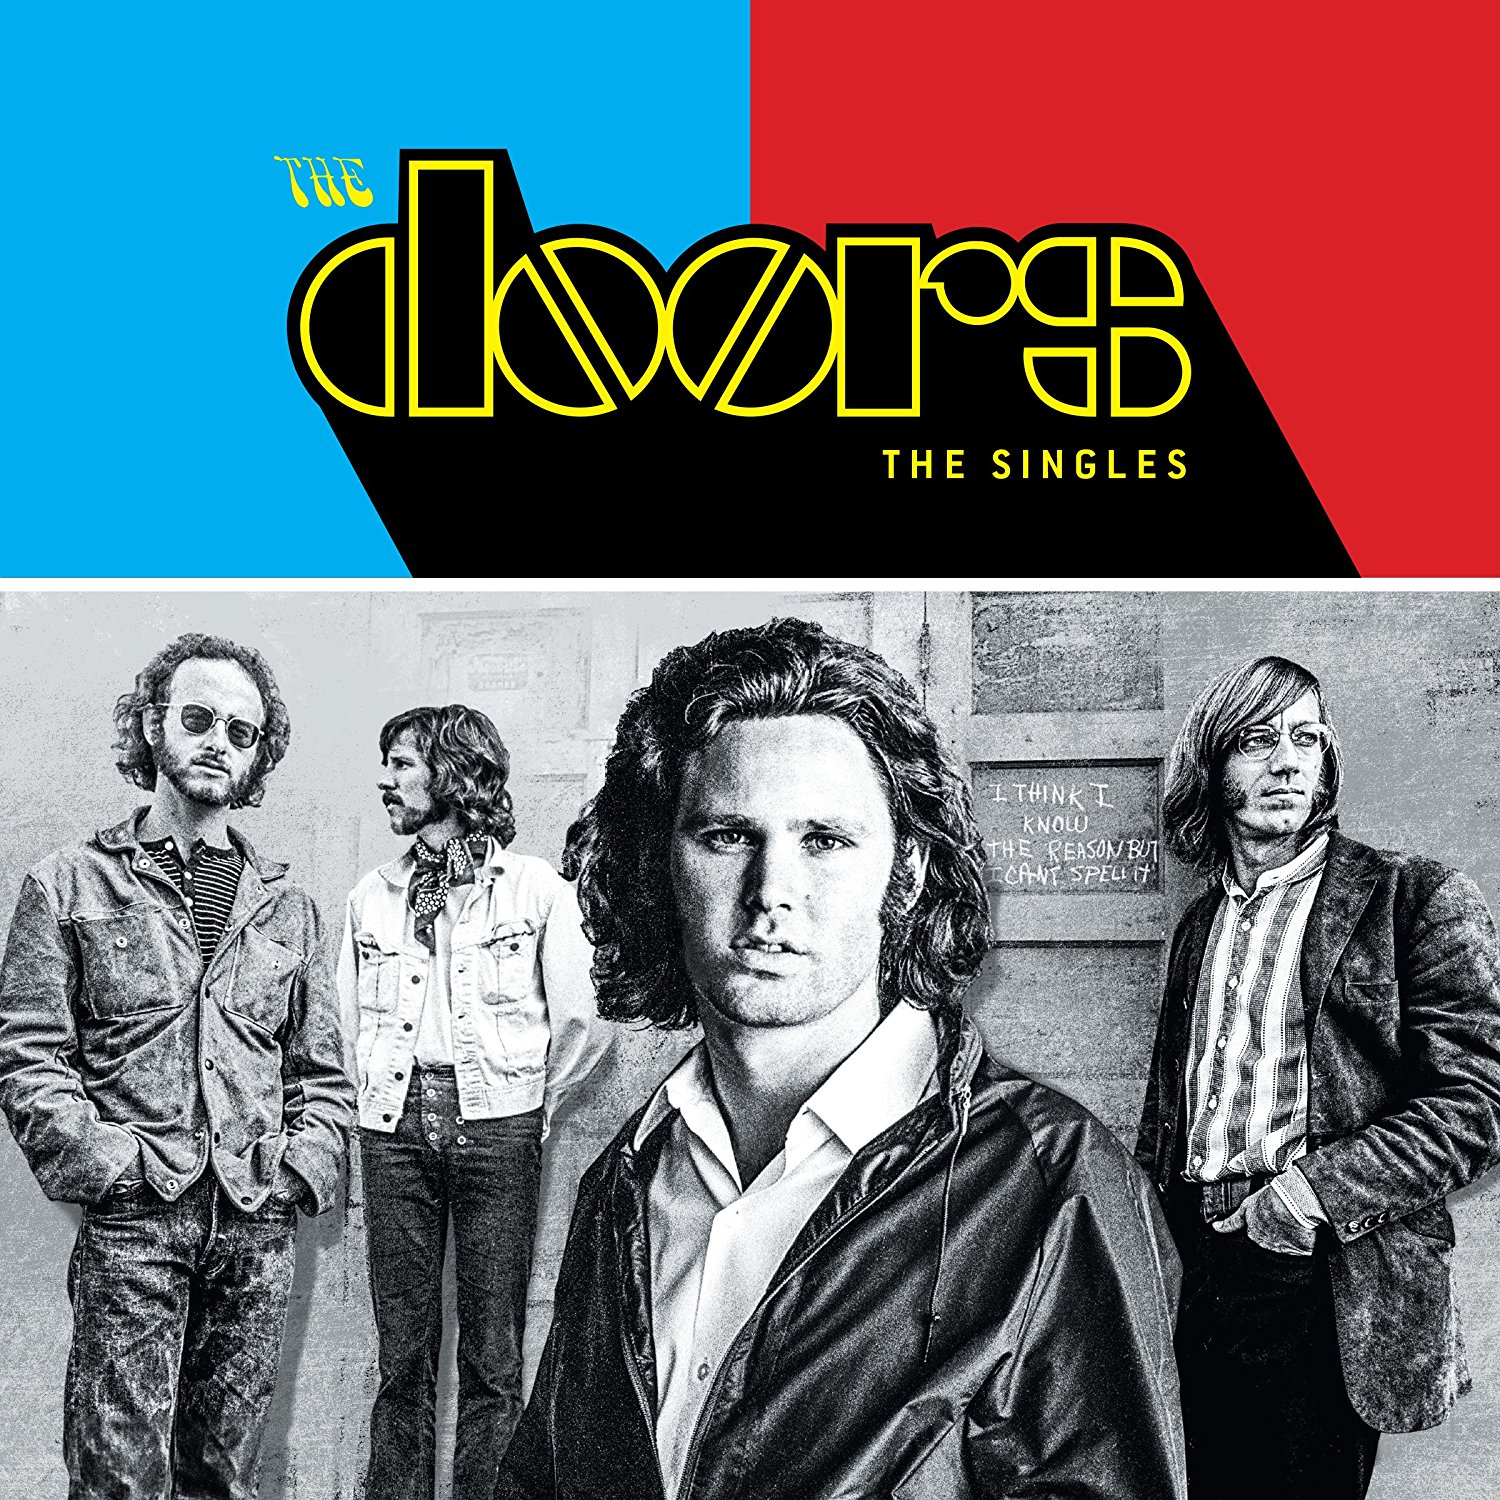 the doors singles collection arrives friday best classic bands. Black Bedroom Furniture Sets. Home Design Ideas